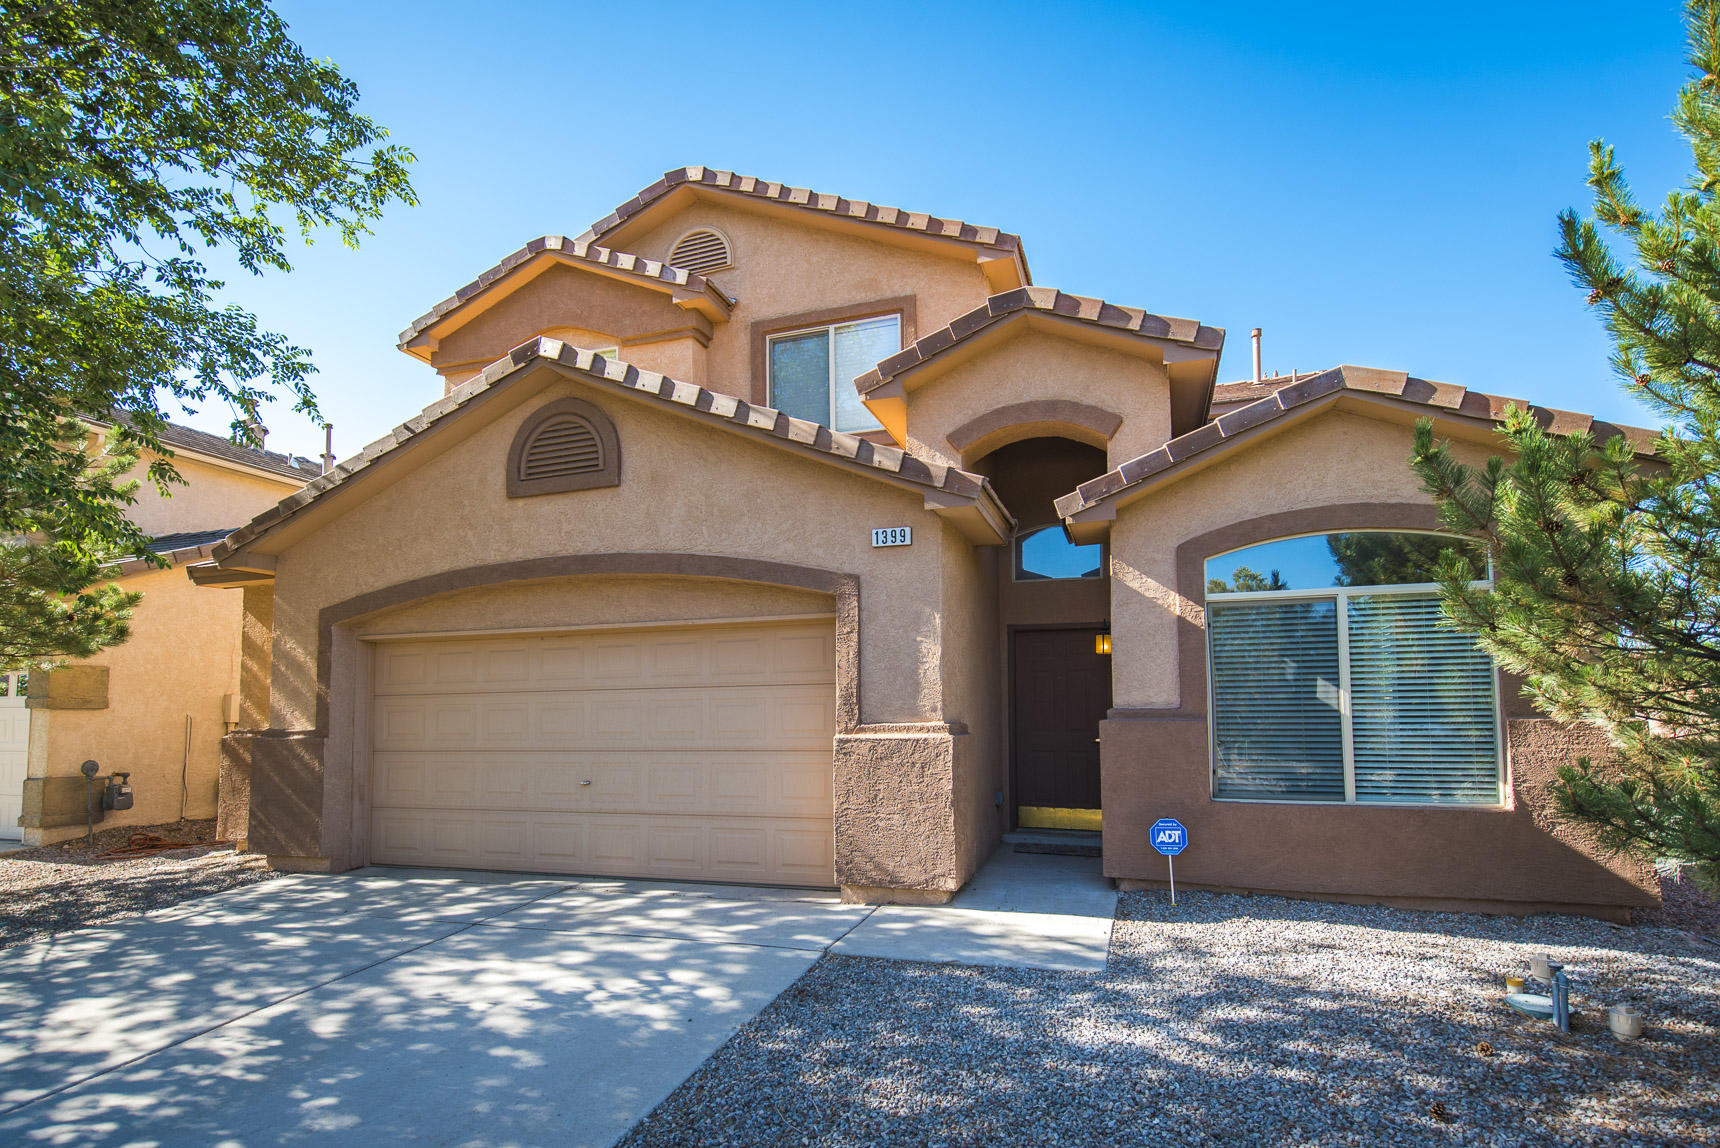 *** OPEN HOUSE - Sunday, August 9th, 1:00-3:00pm *** This Beautiful 3 bedroom, 3 bathroom home sits directly next to a beautiful park and boasts an open floor plan with lots of living space! The home is in the Cabezon Neighborhood and conveniently located near many amenities. The home itself has a spacious kitchen opens up to the main living area which is perfect for entertaining. The generously sized master bedroom has its own fireplace and has 2 huge walk-in closets! There is a patio off the master bedroom too, and it overlooks the park across the street! The loft sets up nicely for extra entertainment space or an office! Seller Offering $3,000.00 New Carpet or Closing Credit with acceptable offer as well. Come see this home today before it's to late!